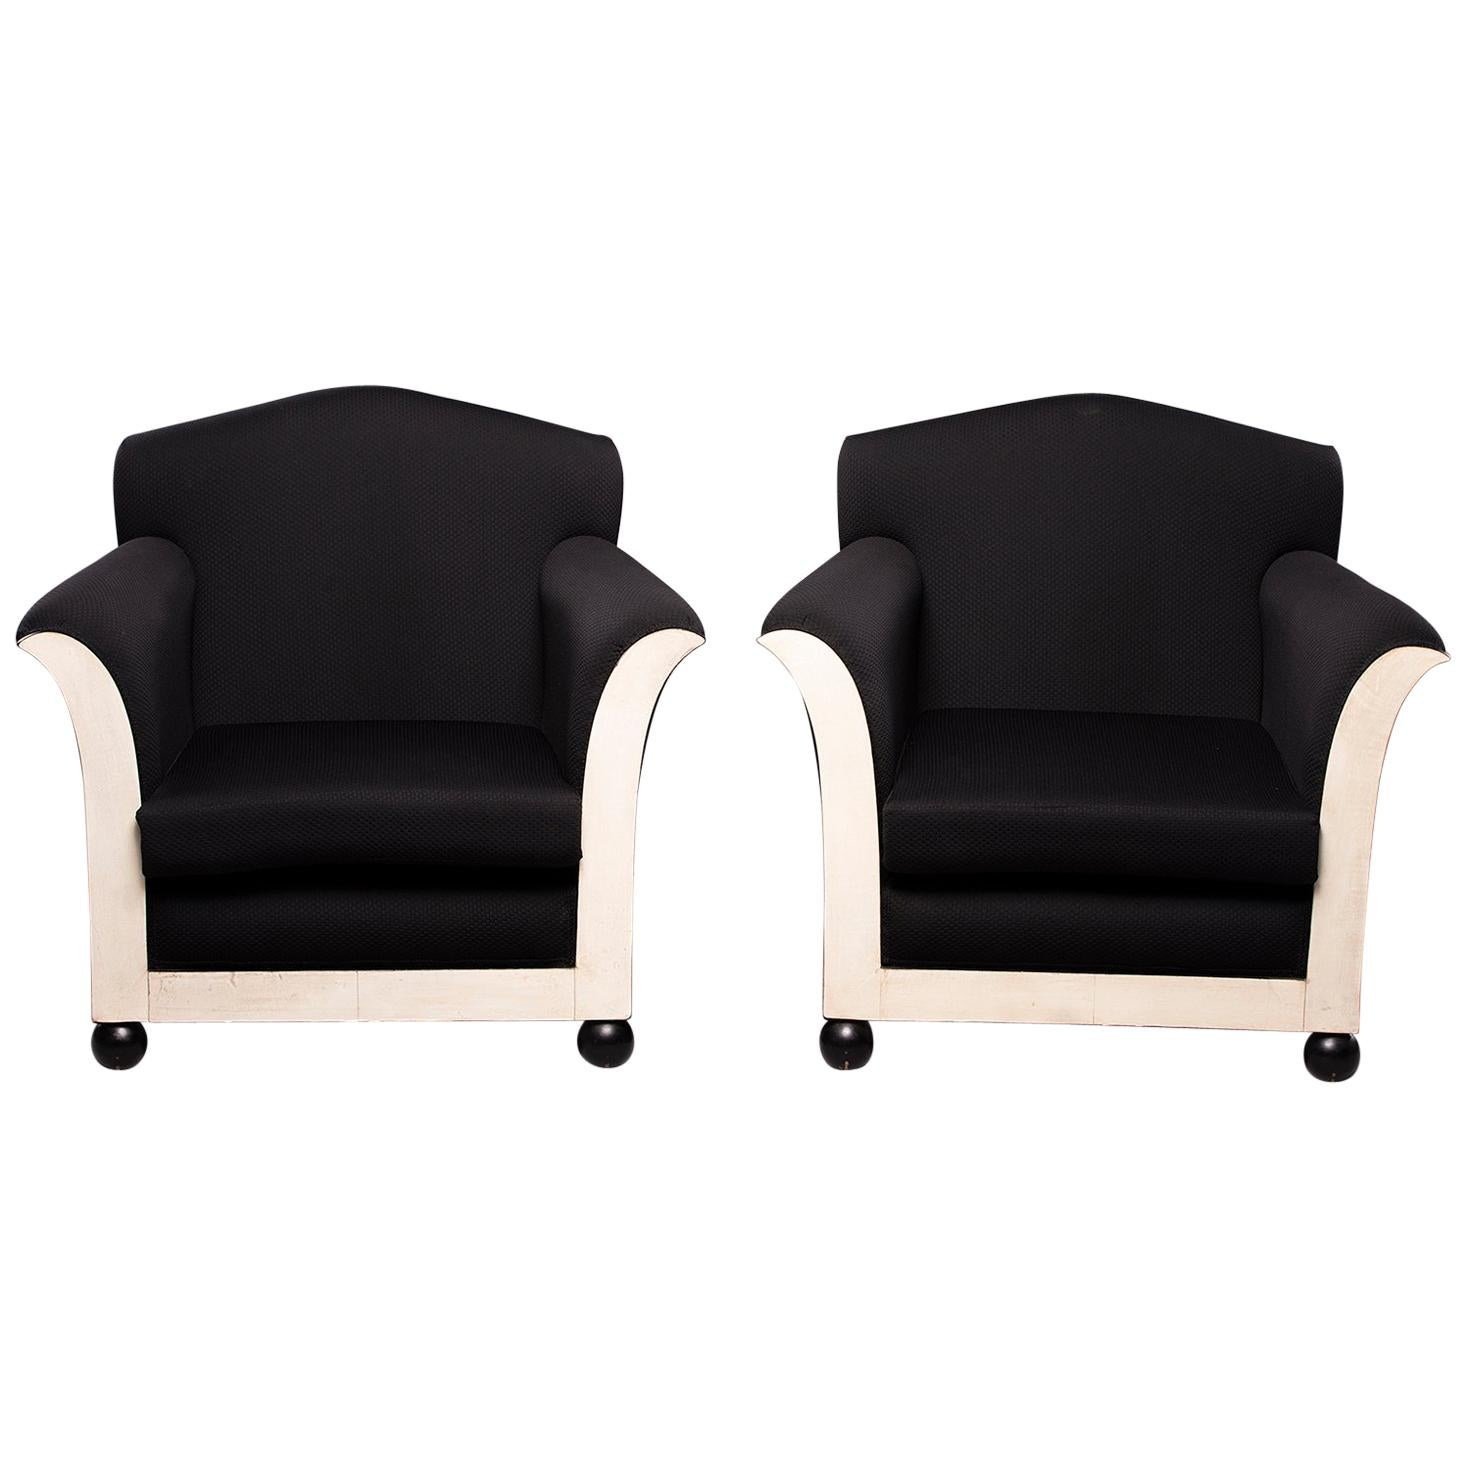 Pair of French Vellum Edged Art Deco Club Chairs